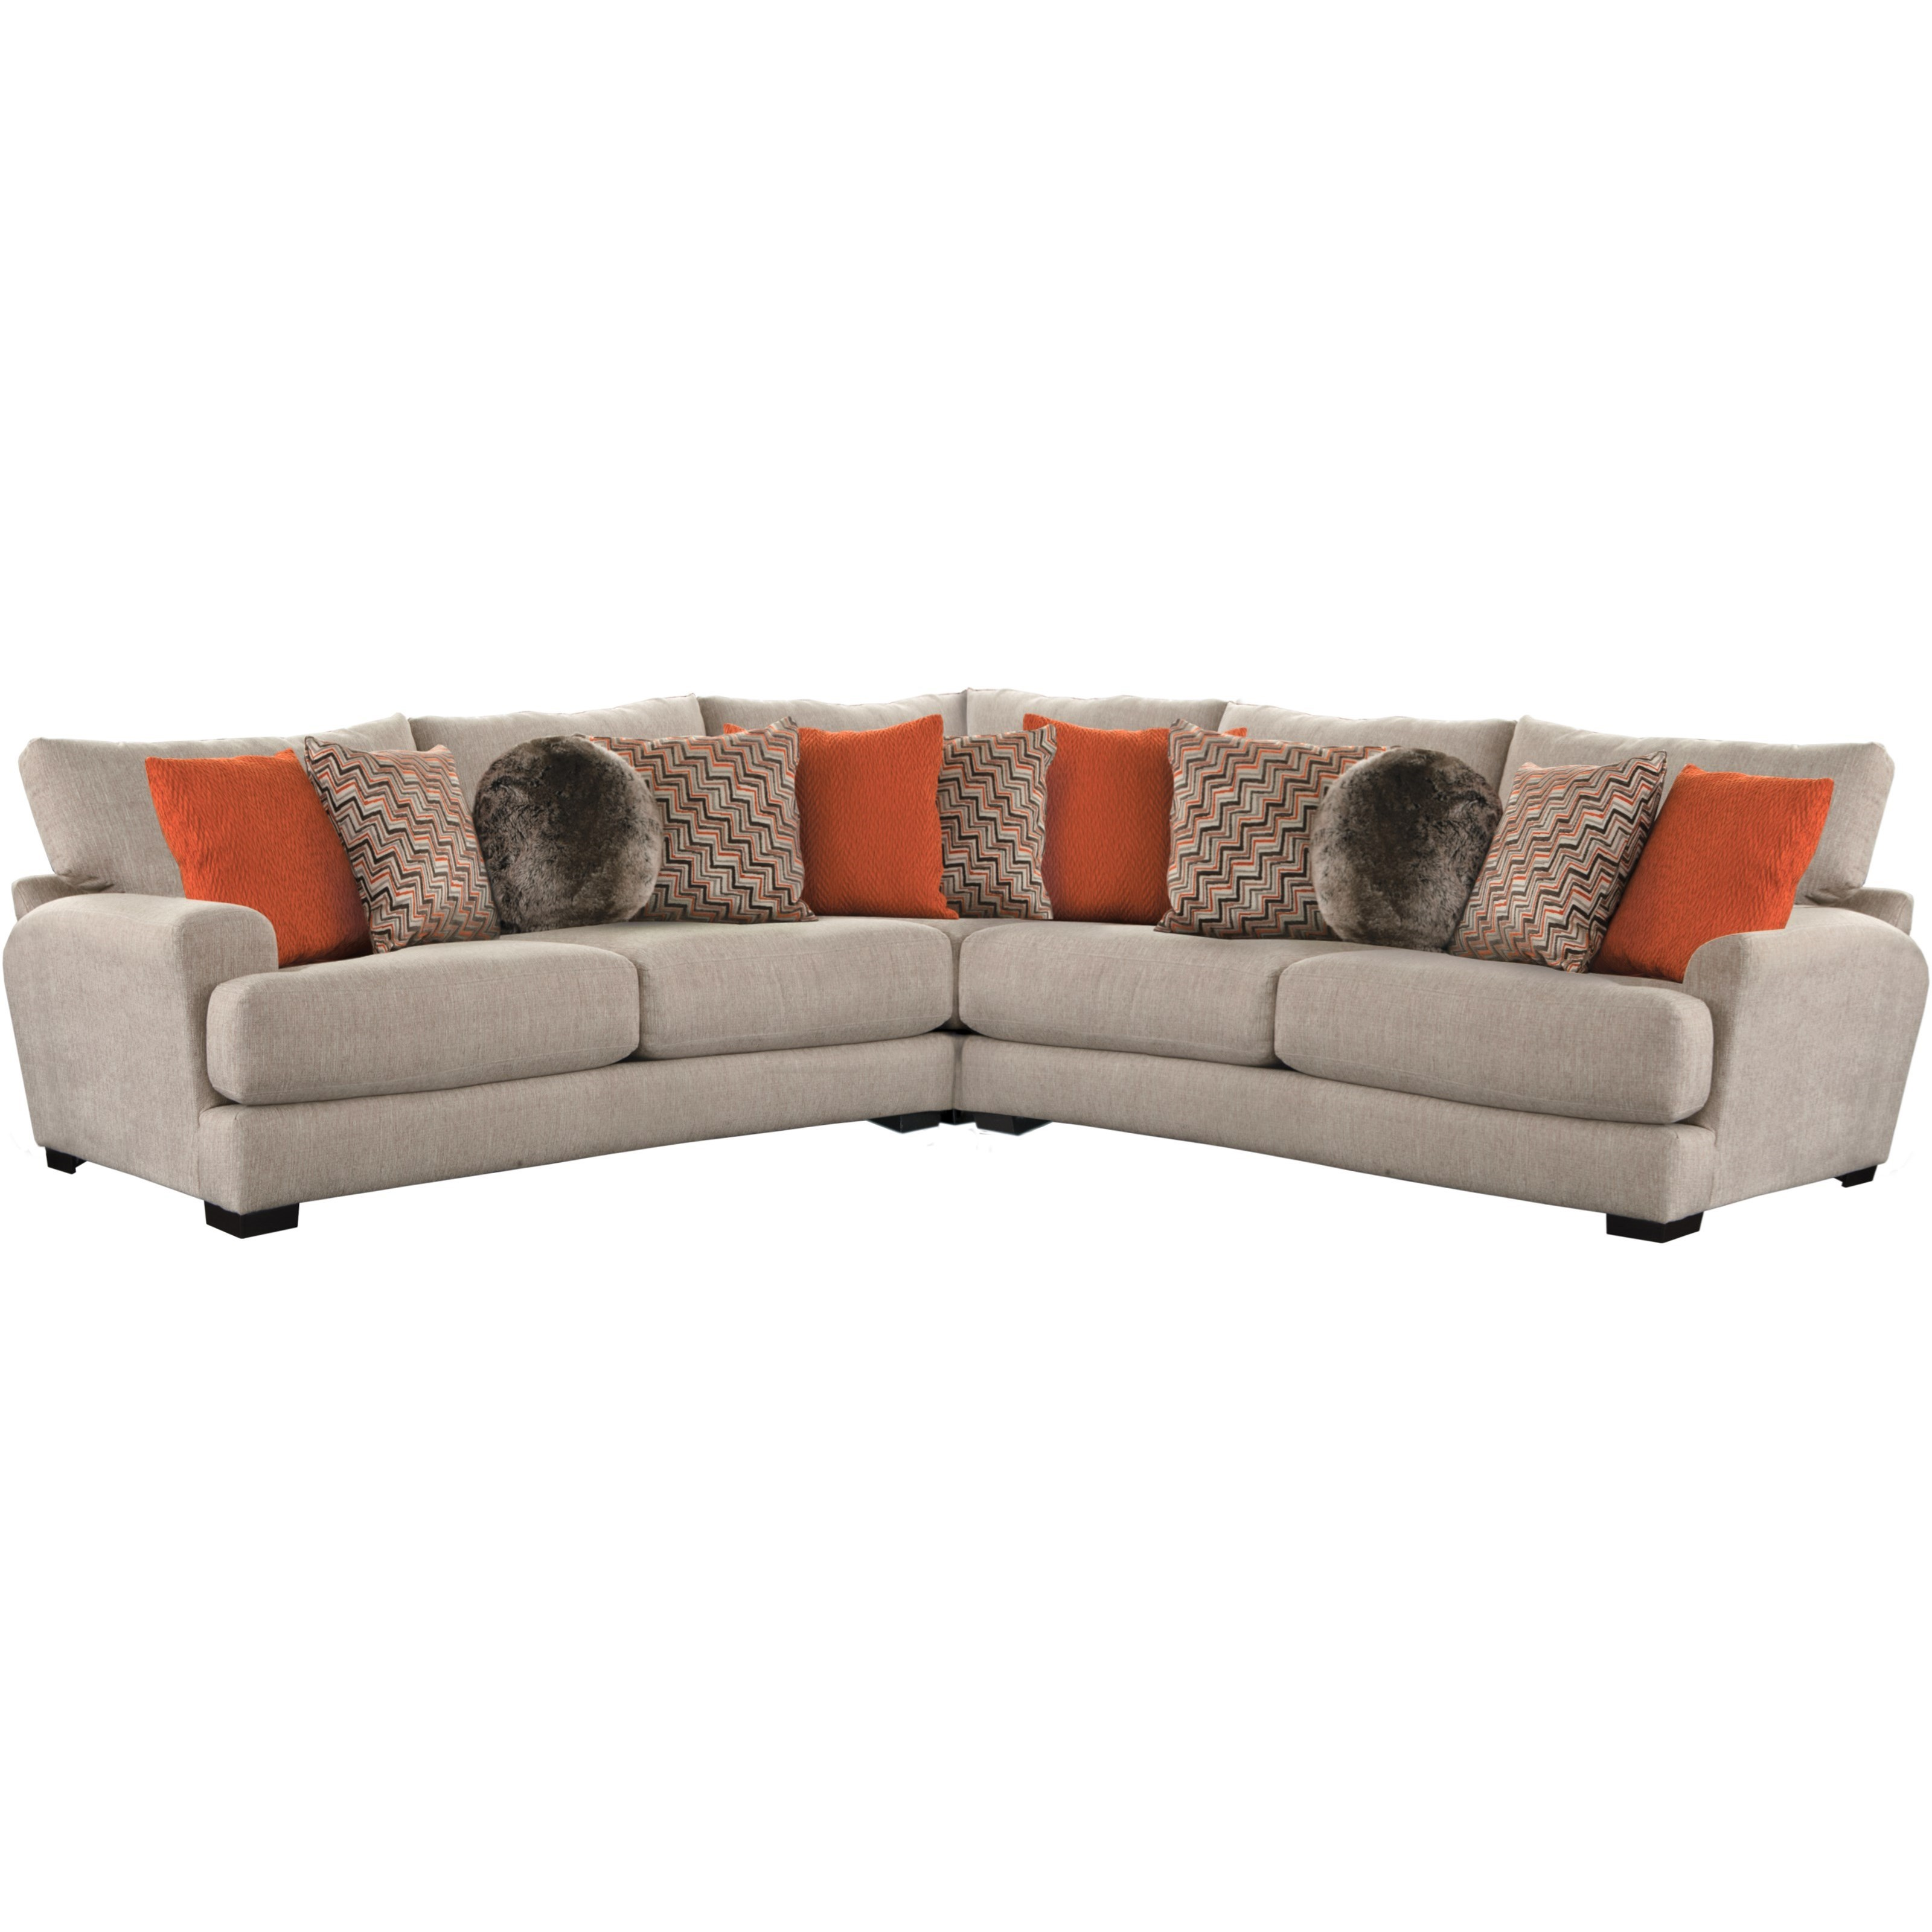 Ava Sectional Sofa with 4 Seats & USB Ports by Jackson Furniture at EFO Furniture Outlet